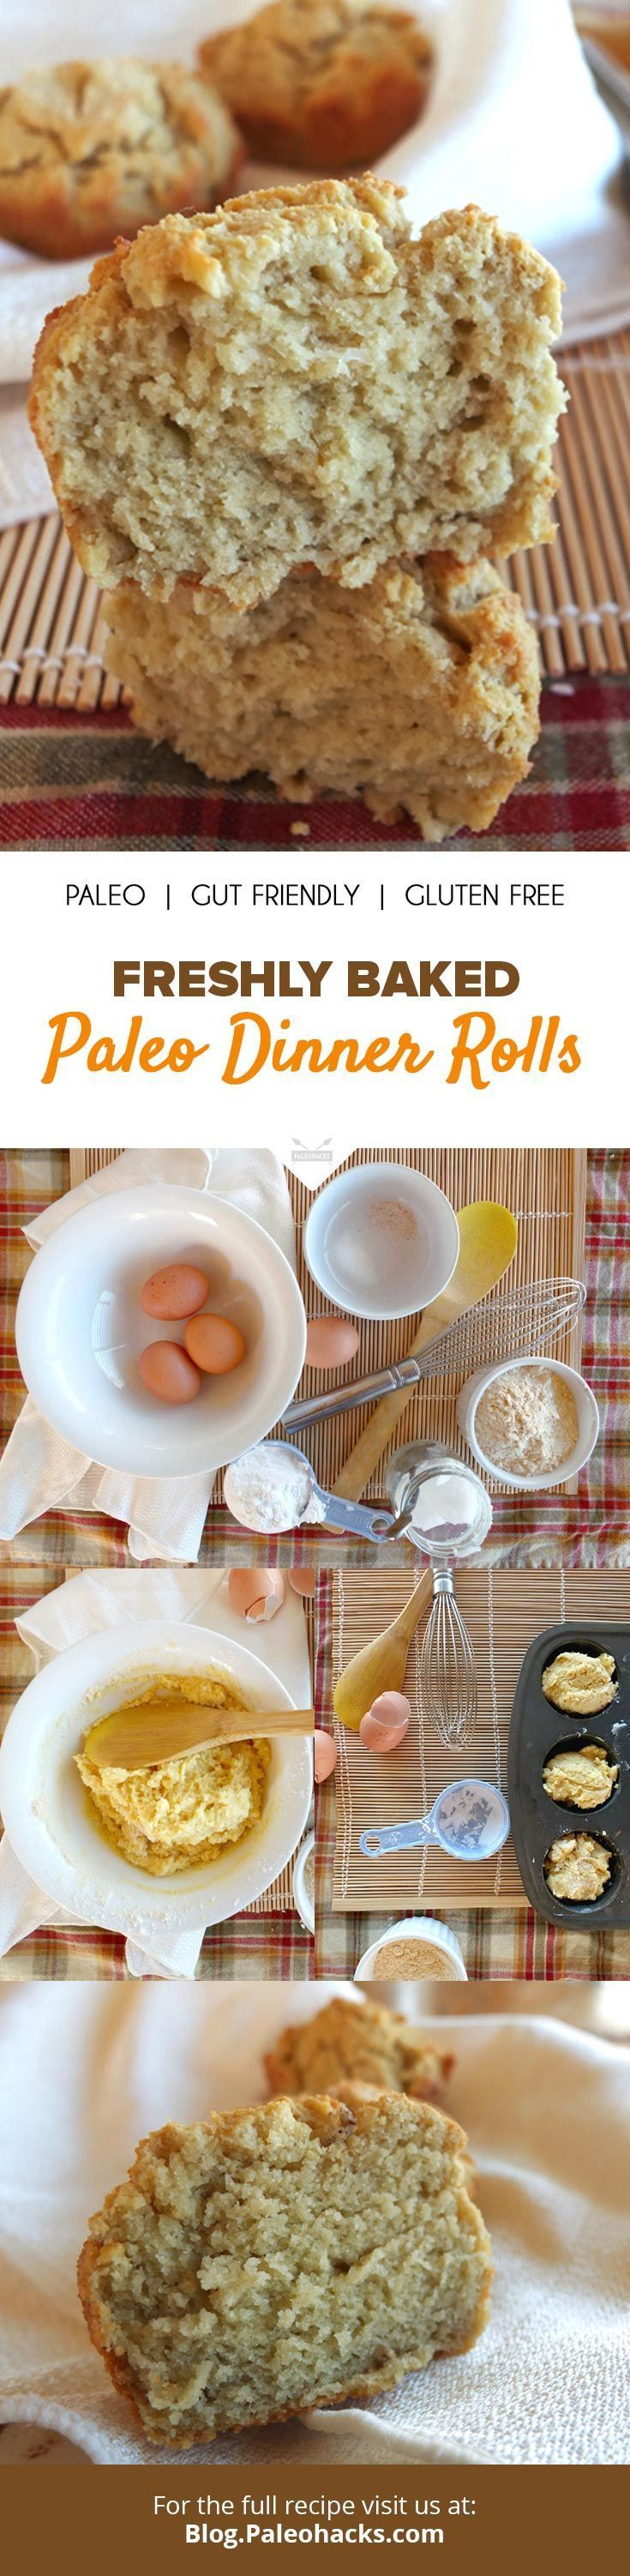 Miss bread rolls on Paleo? Fortunately, it's easy to make grain-free dinner rolls. All you need is a few ingredients, a muffin pan, and a mixing bowl! Get the full recipe here: http://paleo.co/rollspaleo